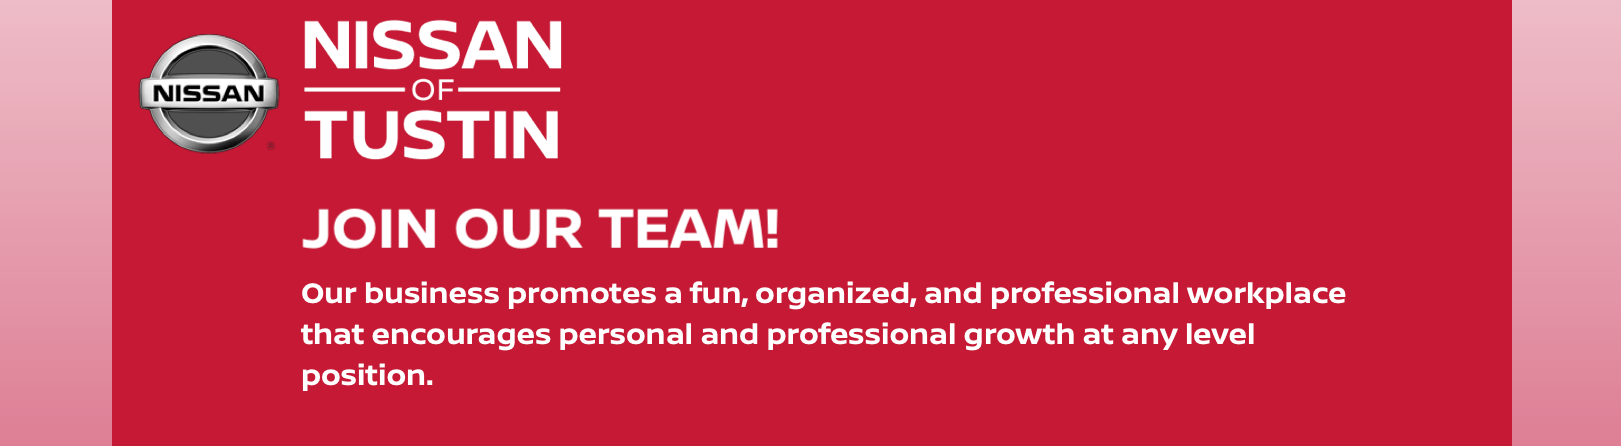 Join Our Team! Our business promotes a fun, orgnaized, and professional workplace that encourages personal and professional growth at any level postion